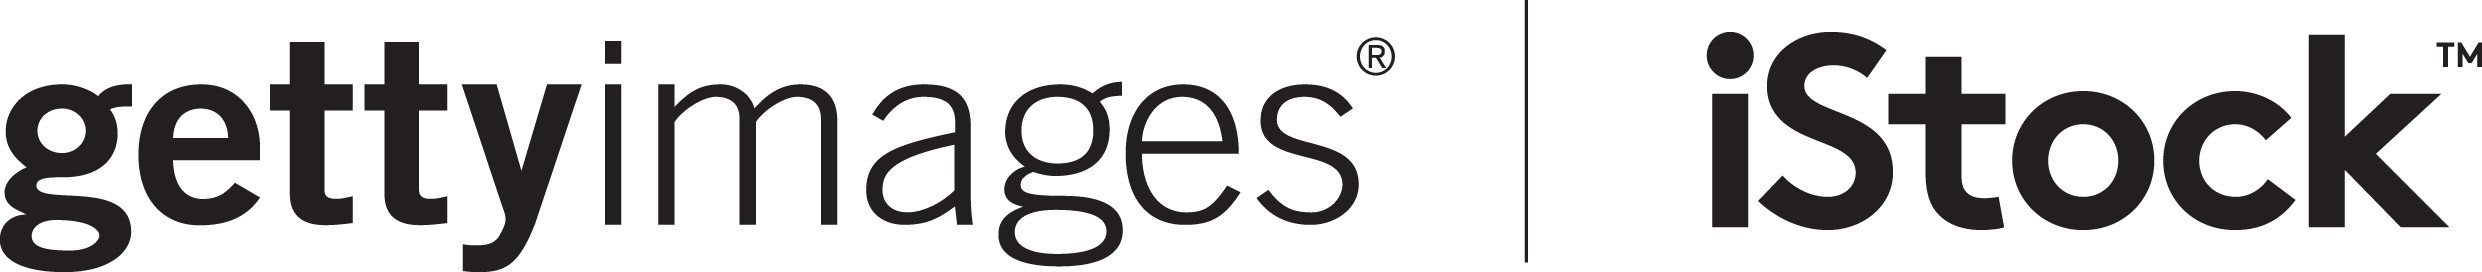 Getty Images iStock Logo